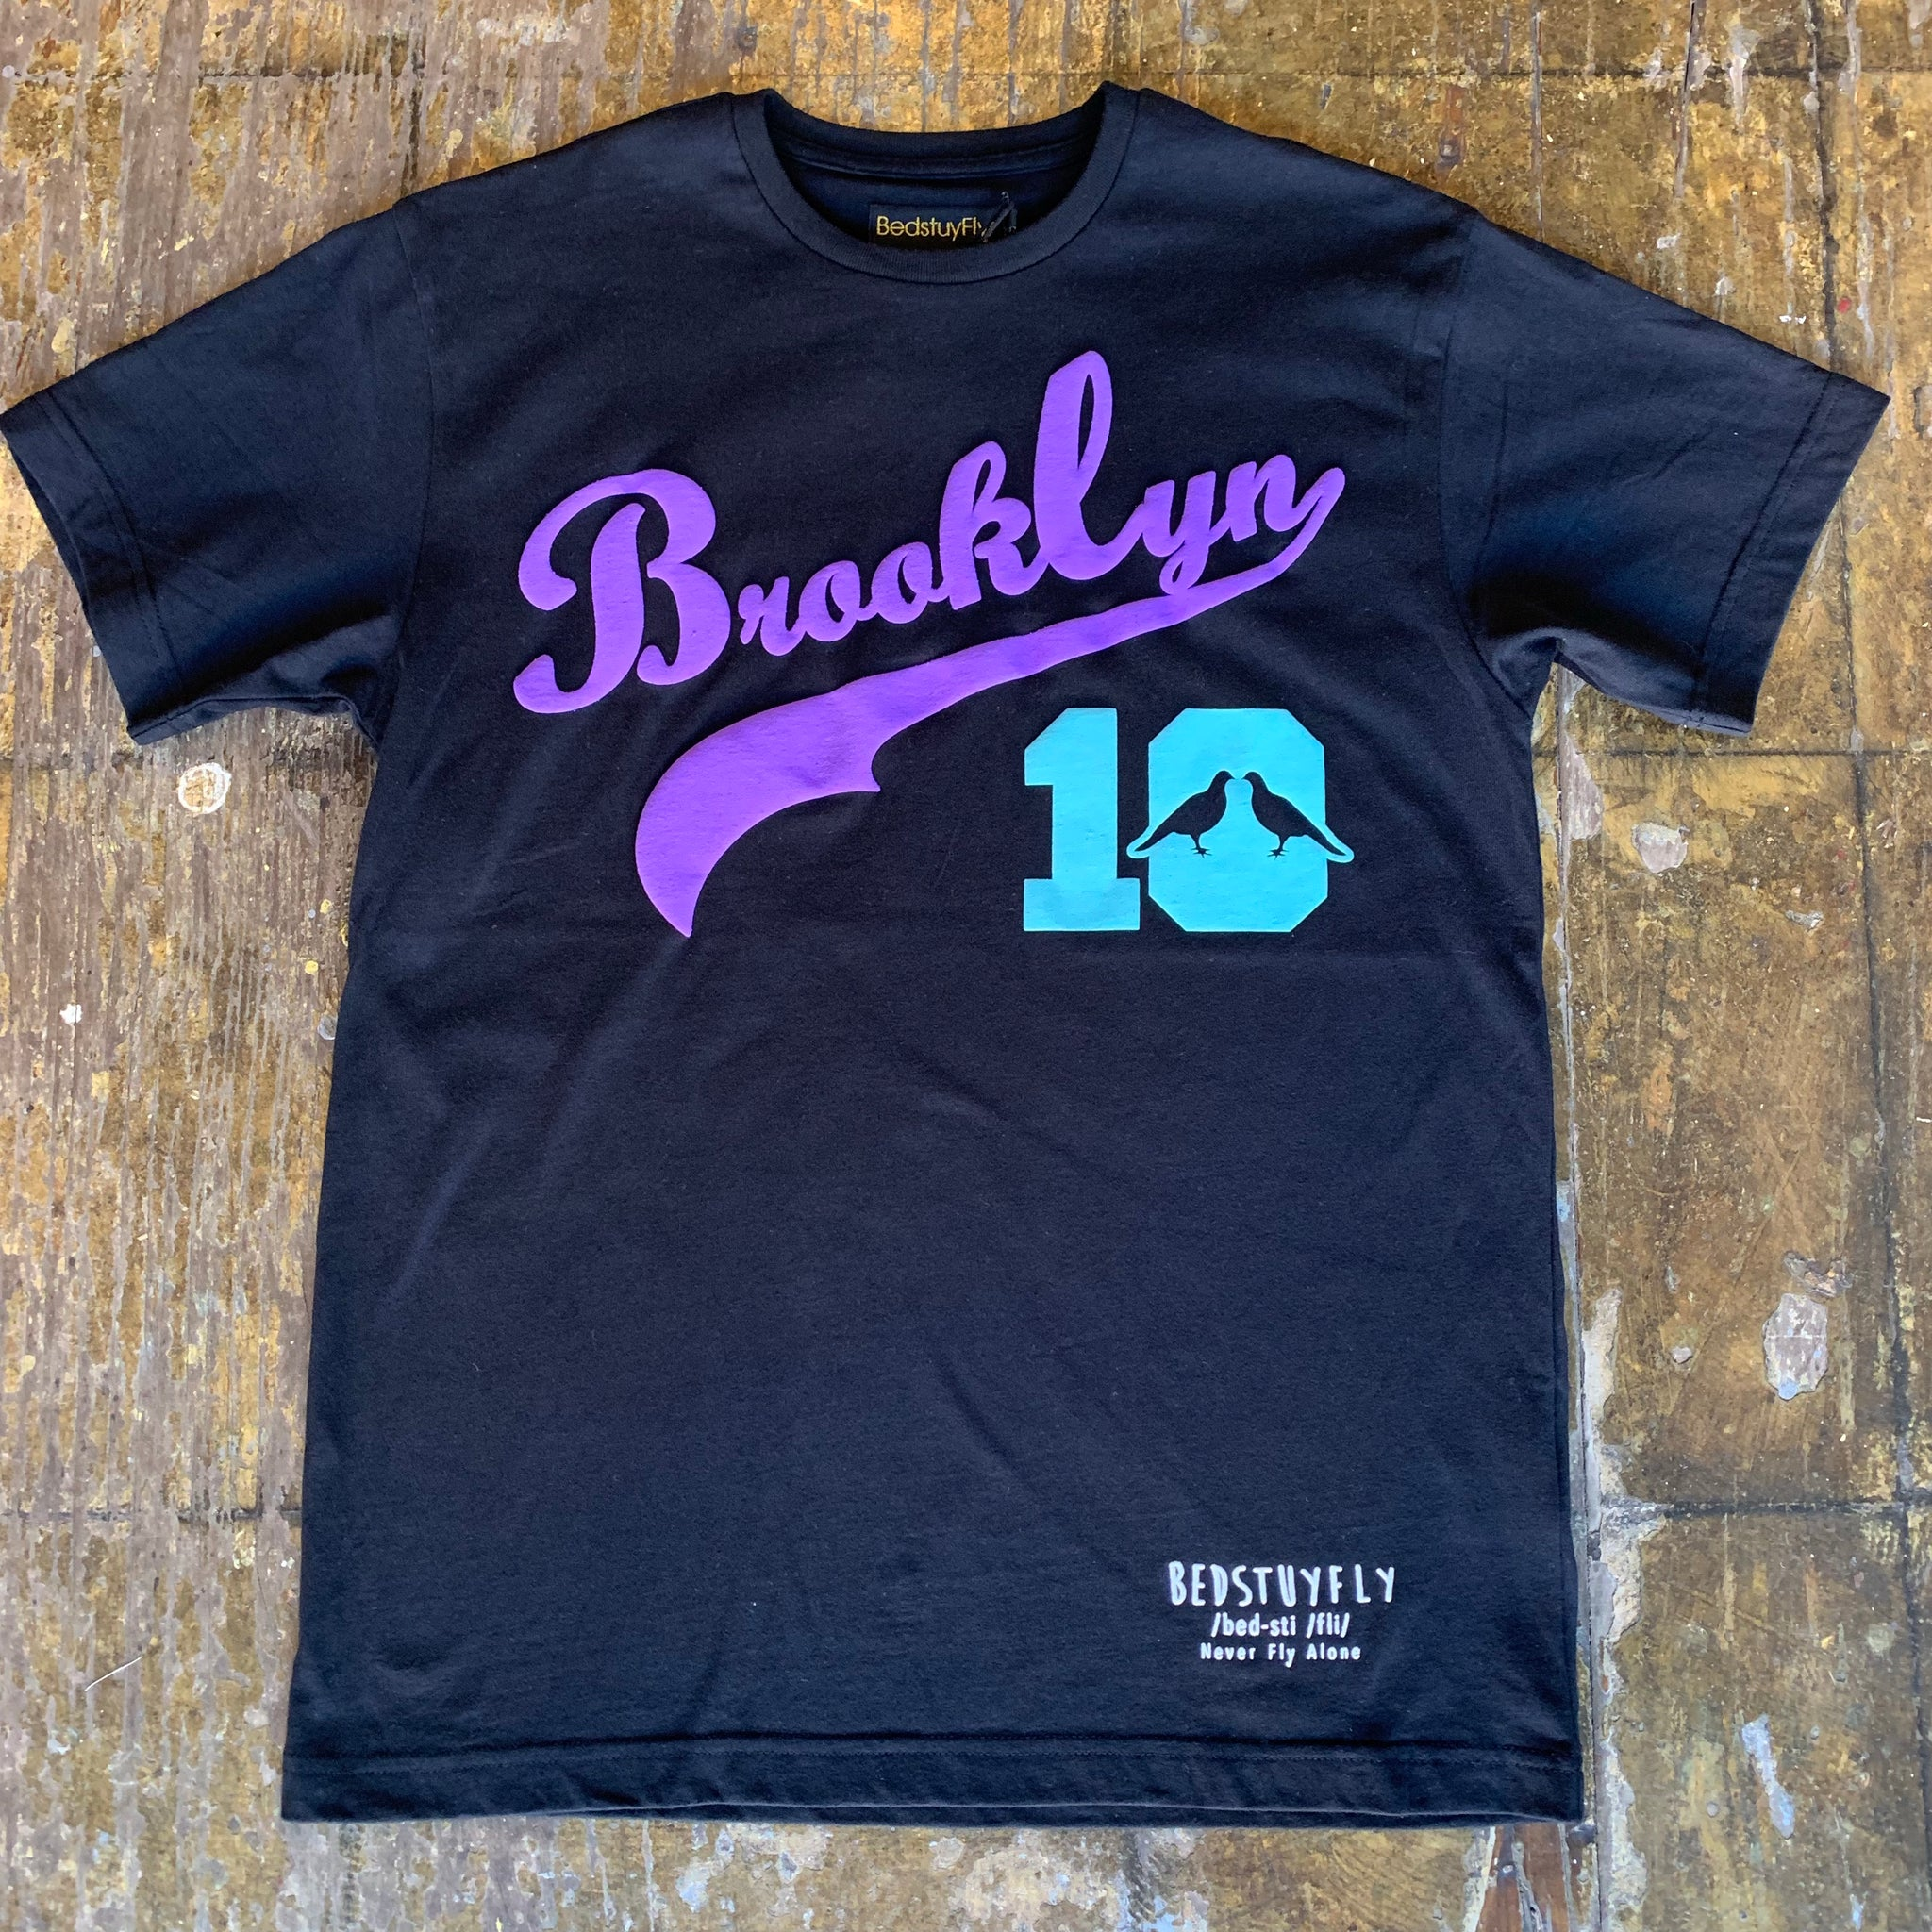 Brooklyn T-Shirt #10 (Blk/Prp)